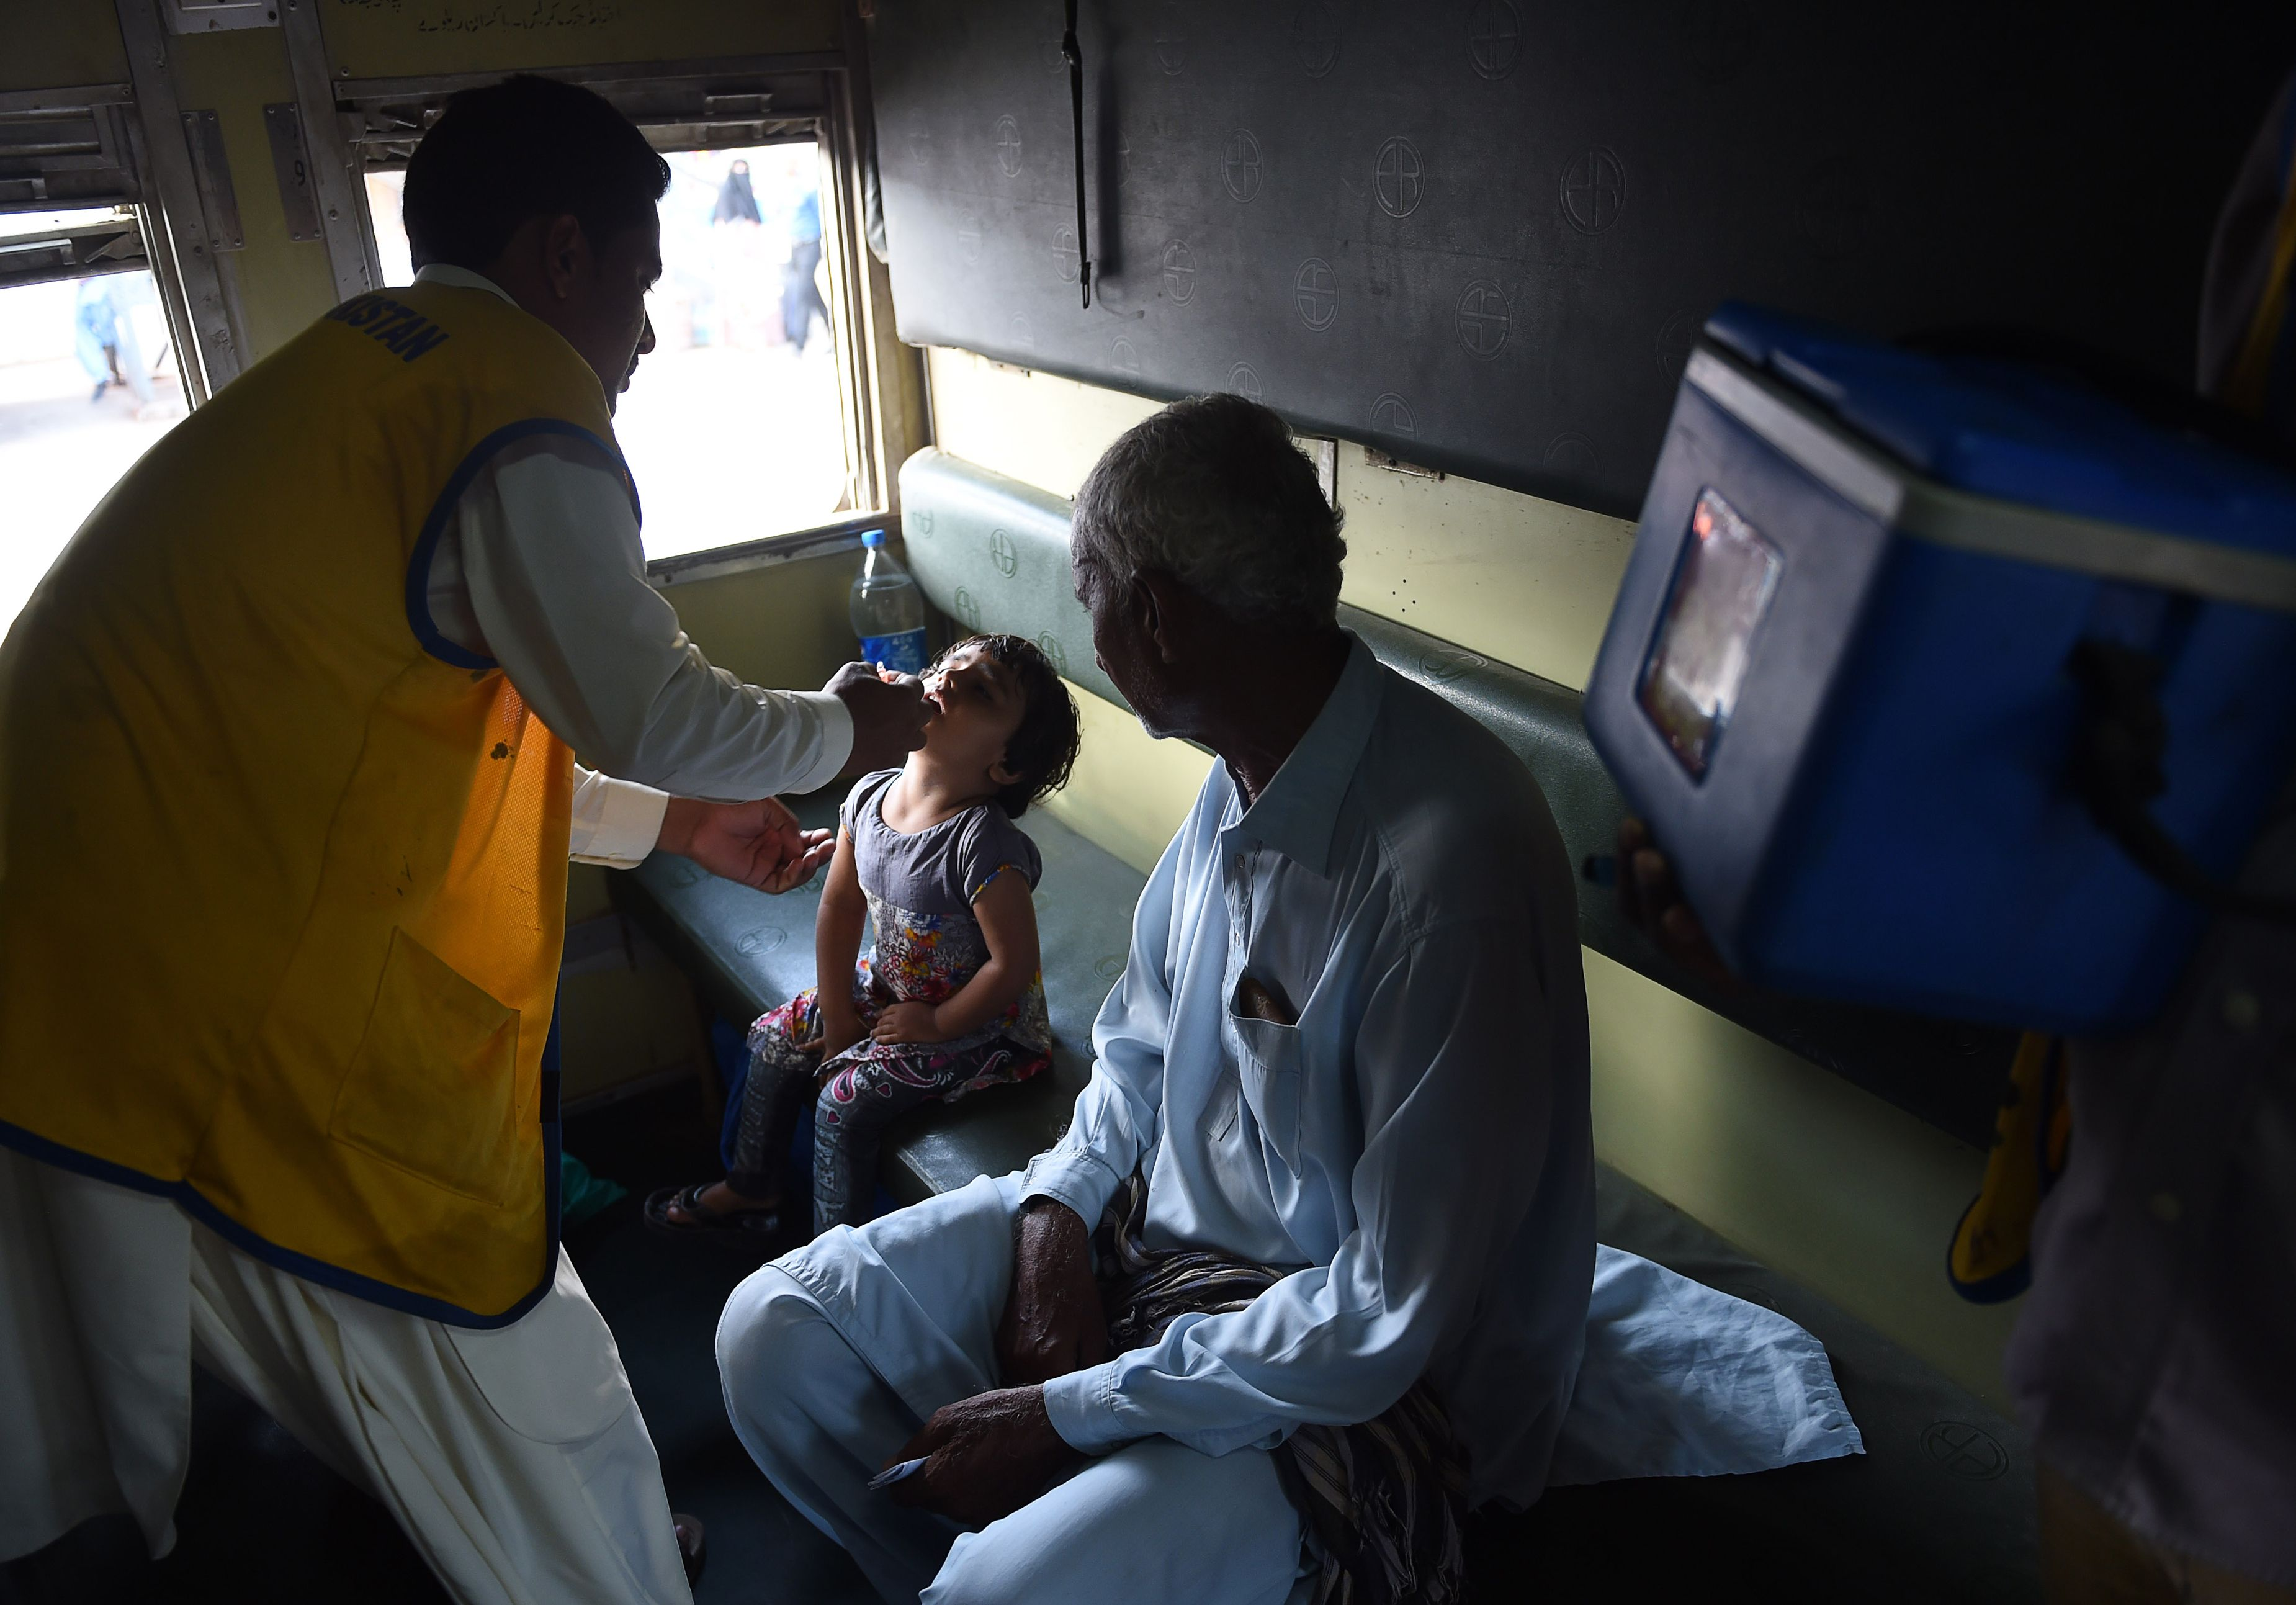 Could the world see a resurgence of polio? Experts fear a cautionary tale in measles